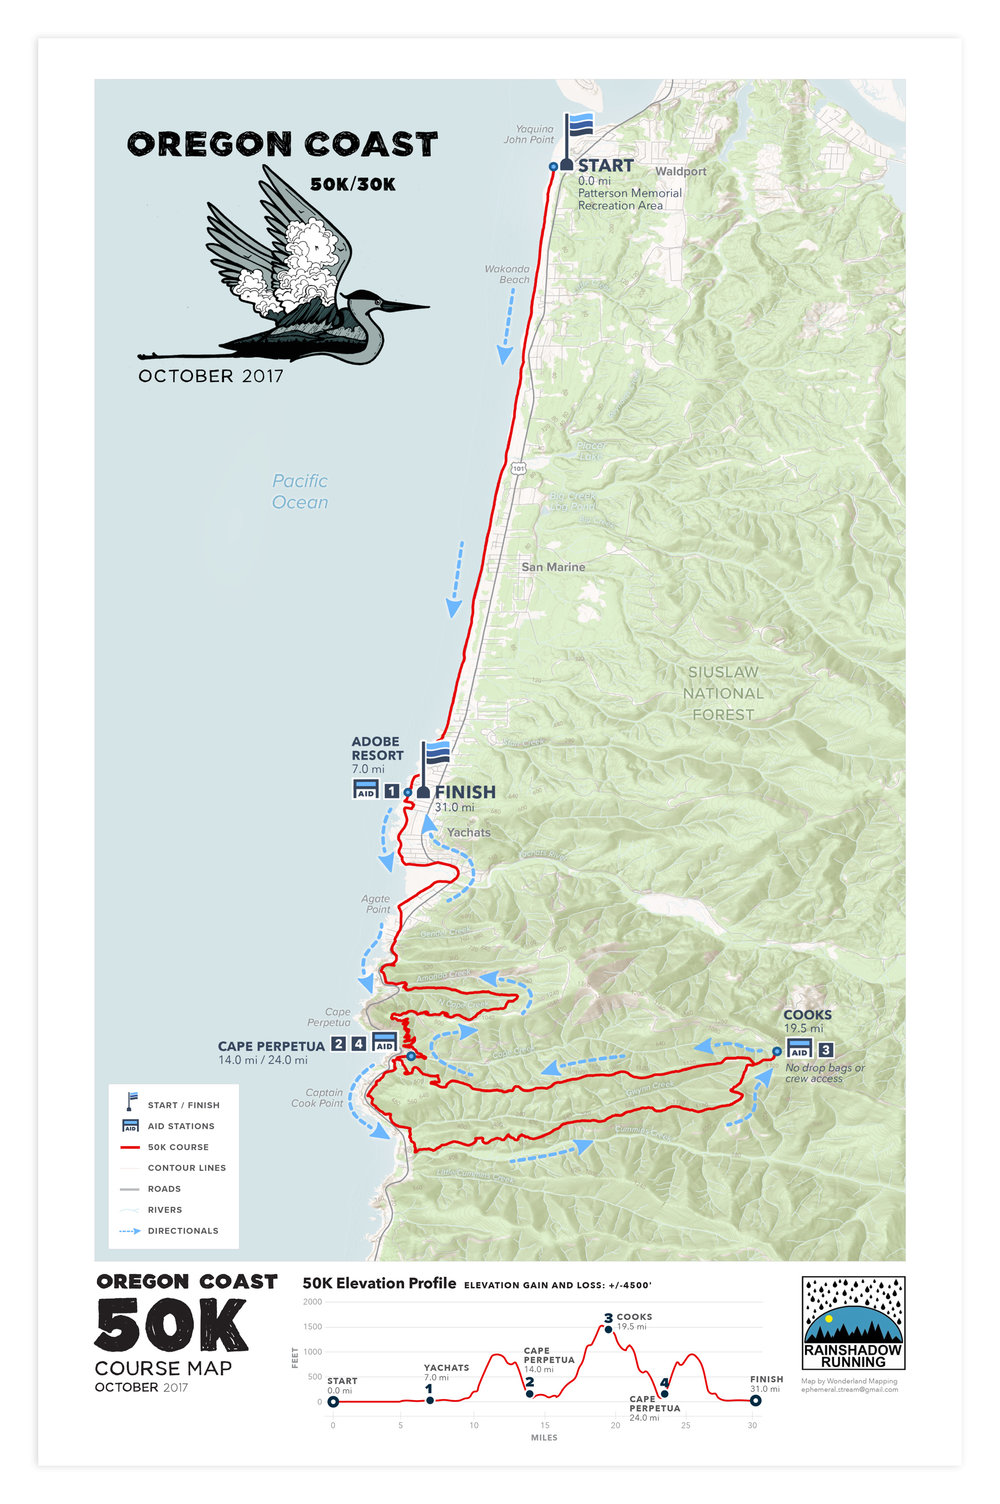 Rainshadow Running's Oregon Coast 50K.